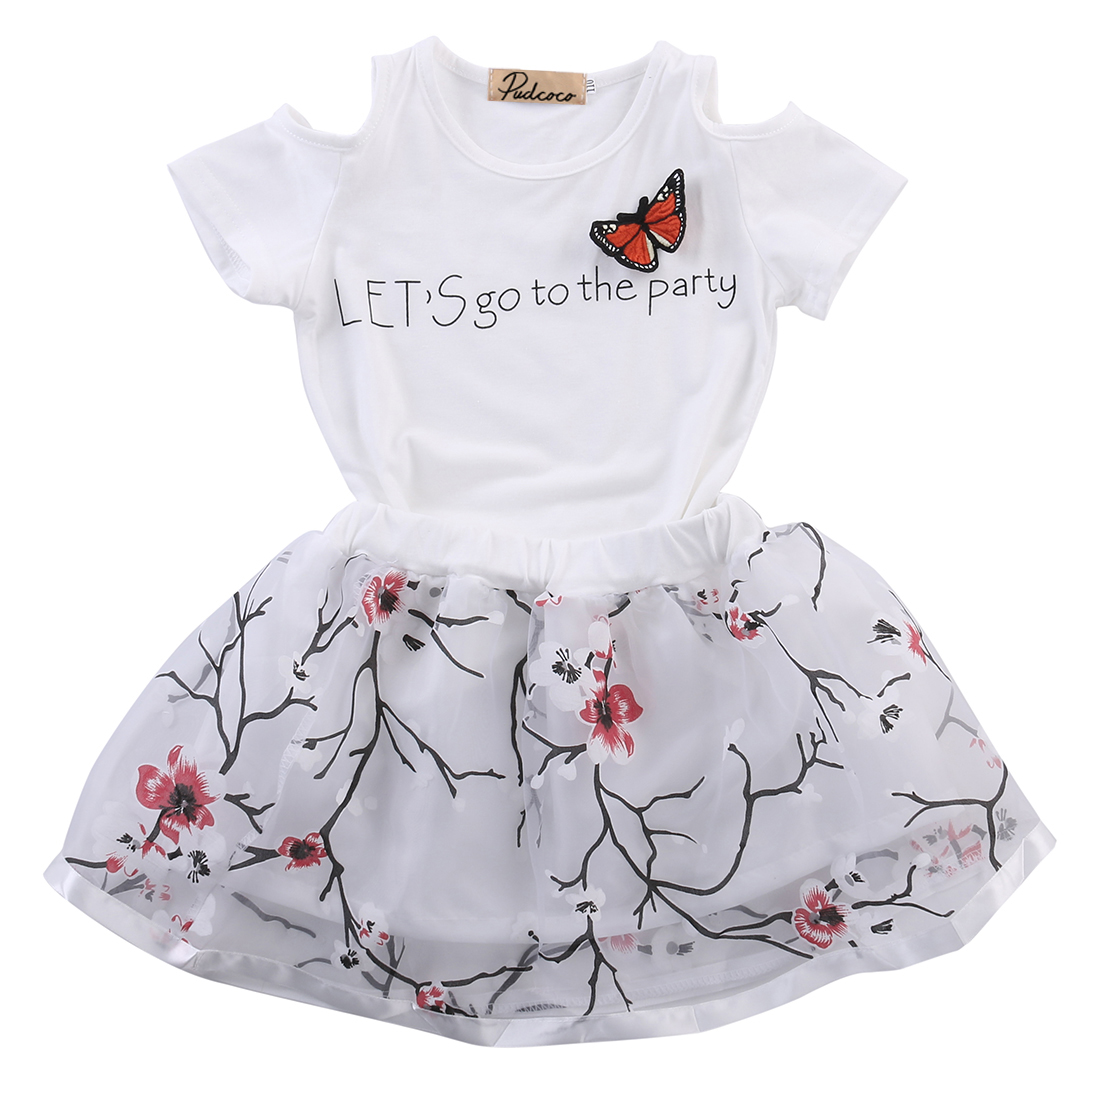 2PCS Infant Kids Baby Girl Summer Outfits Clothes T-shirt Tops+Skirt Dresses Set